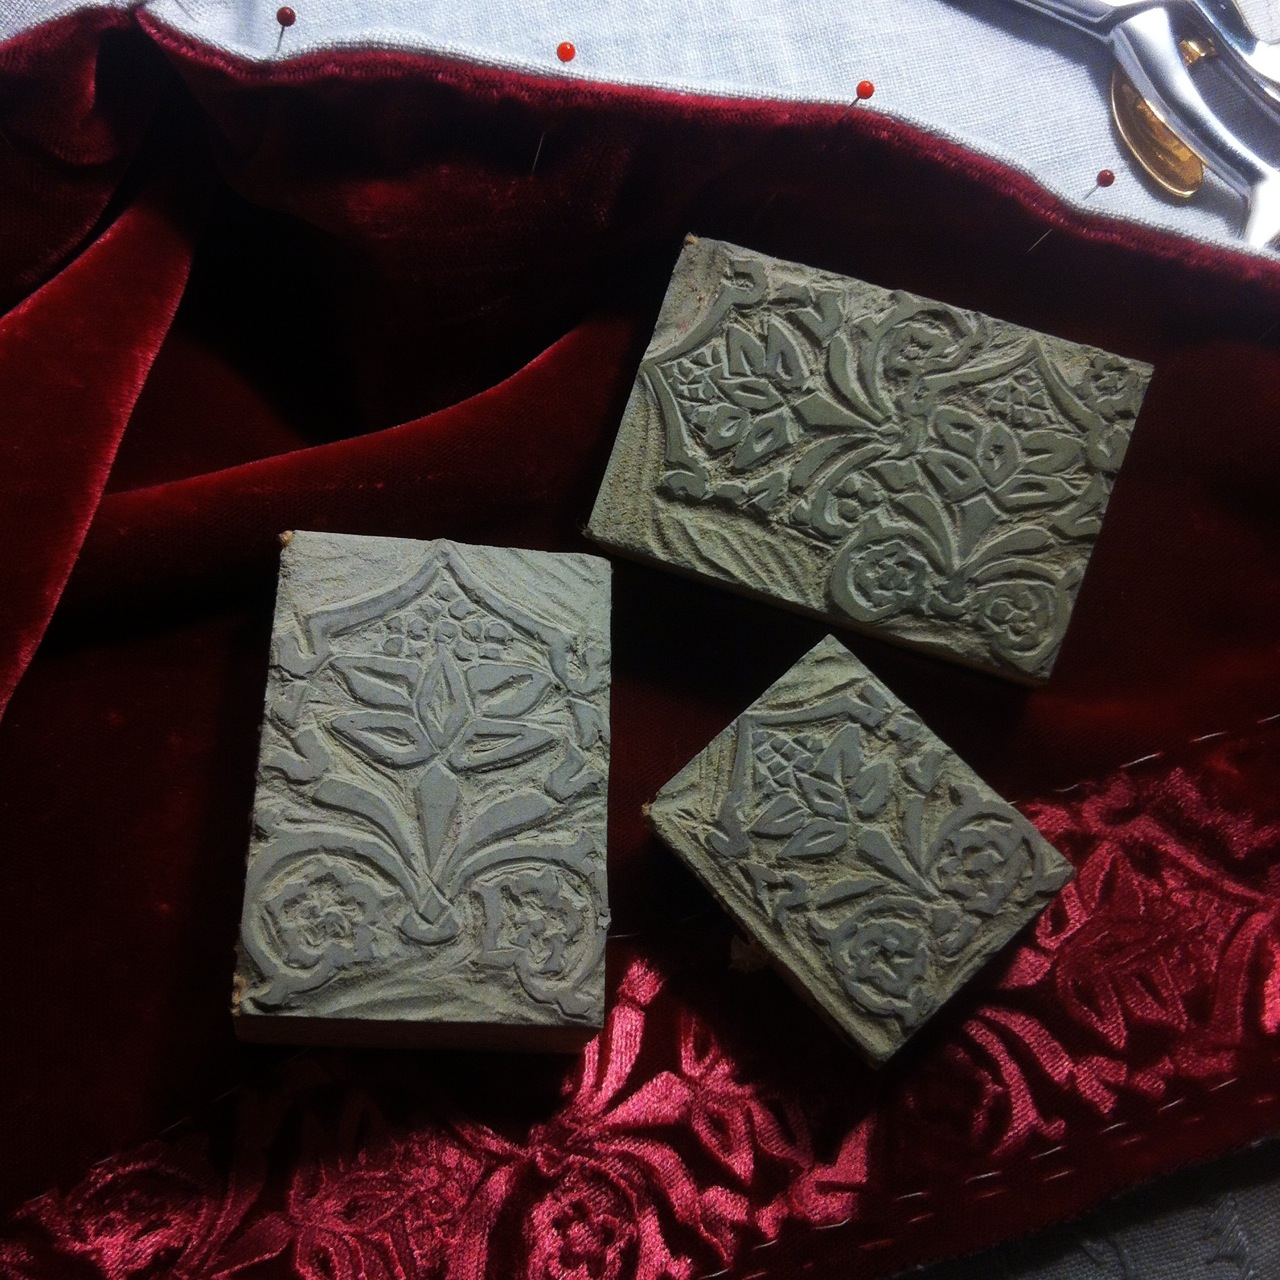 Stamps for embossing velvet